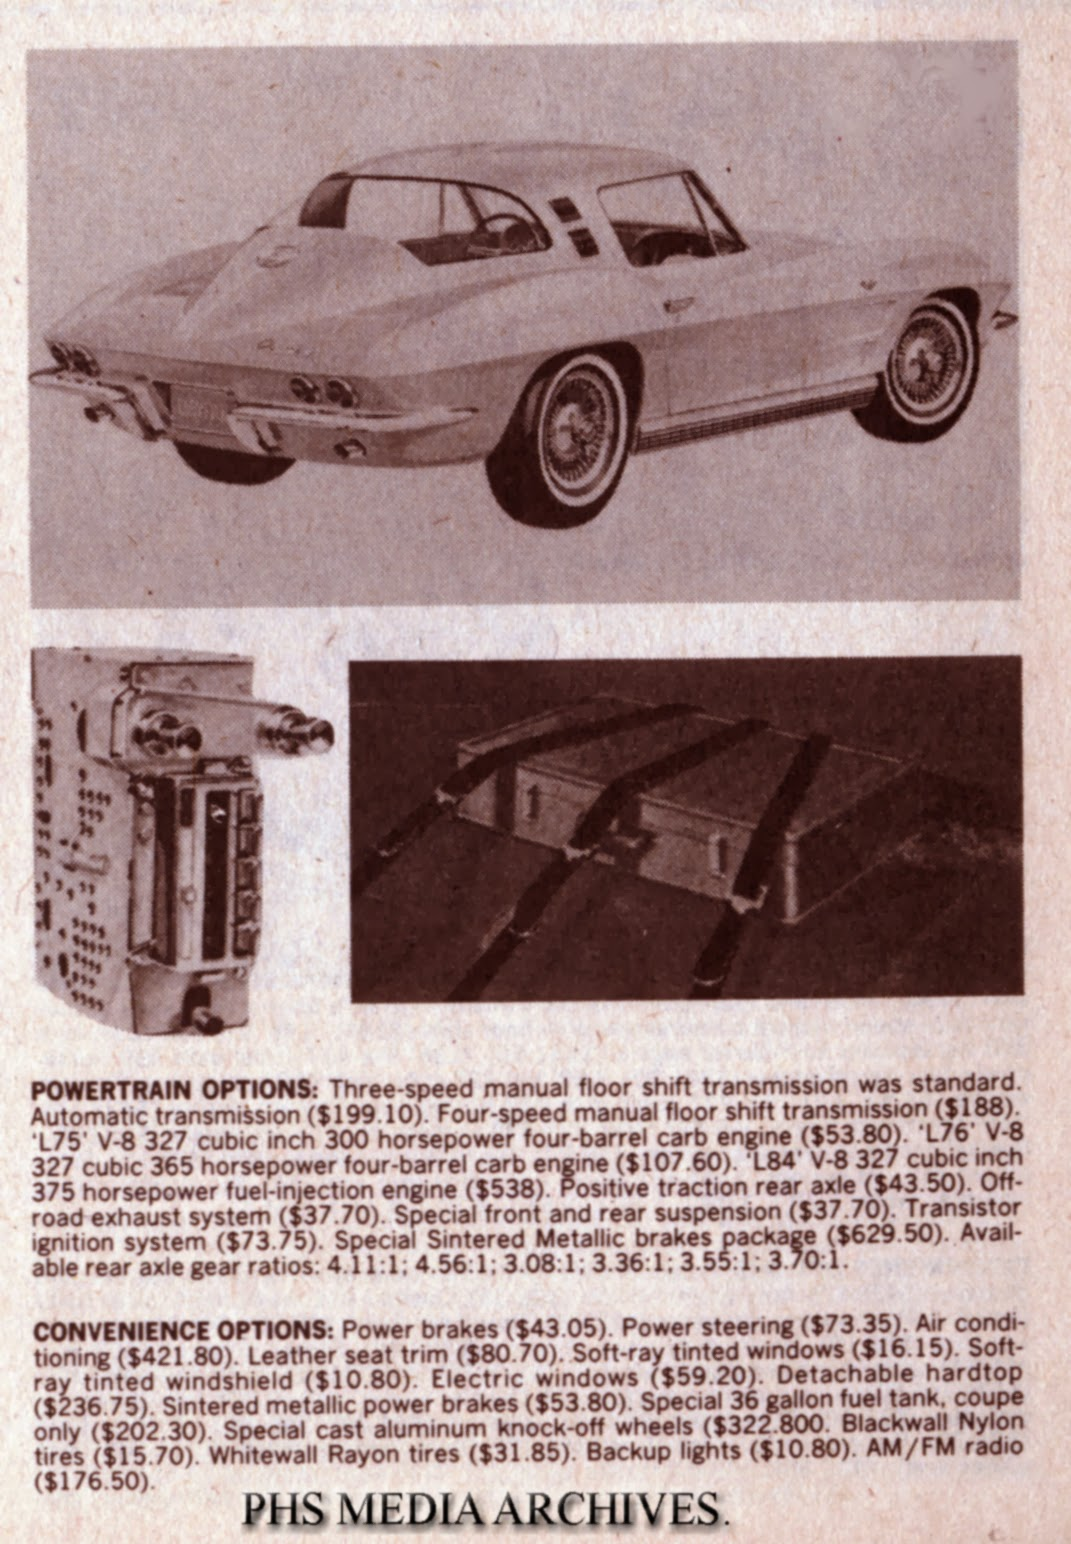 1963 1967 corvette radio buyer s guide phscollectorcarworld rh phscollectorcarworld blogspot com